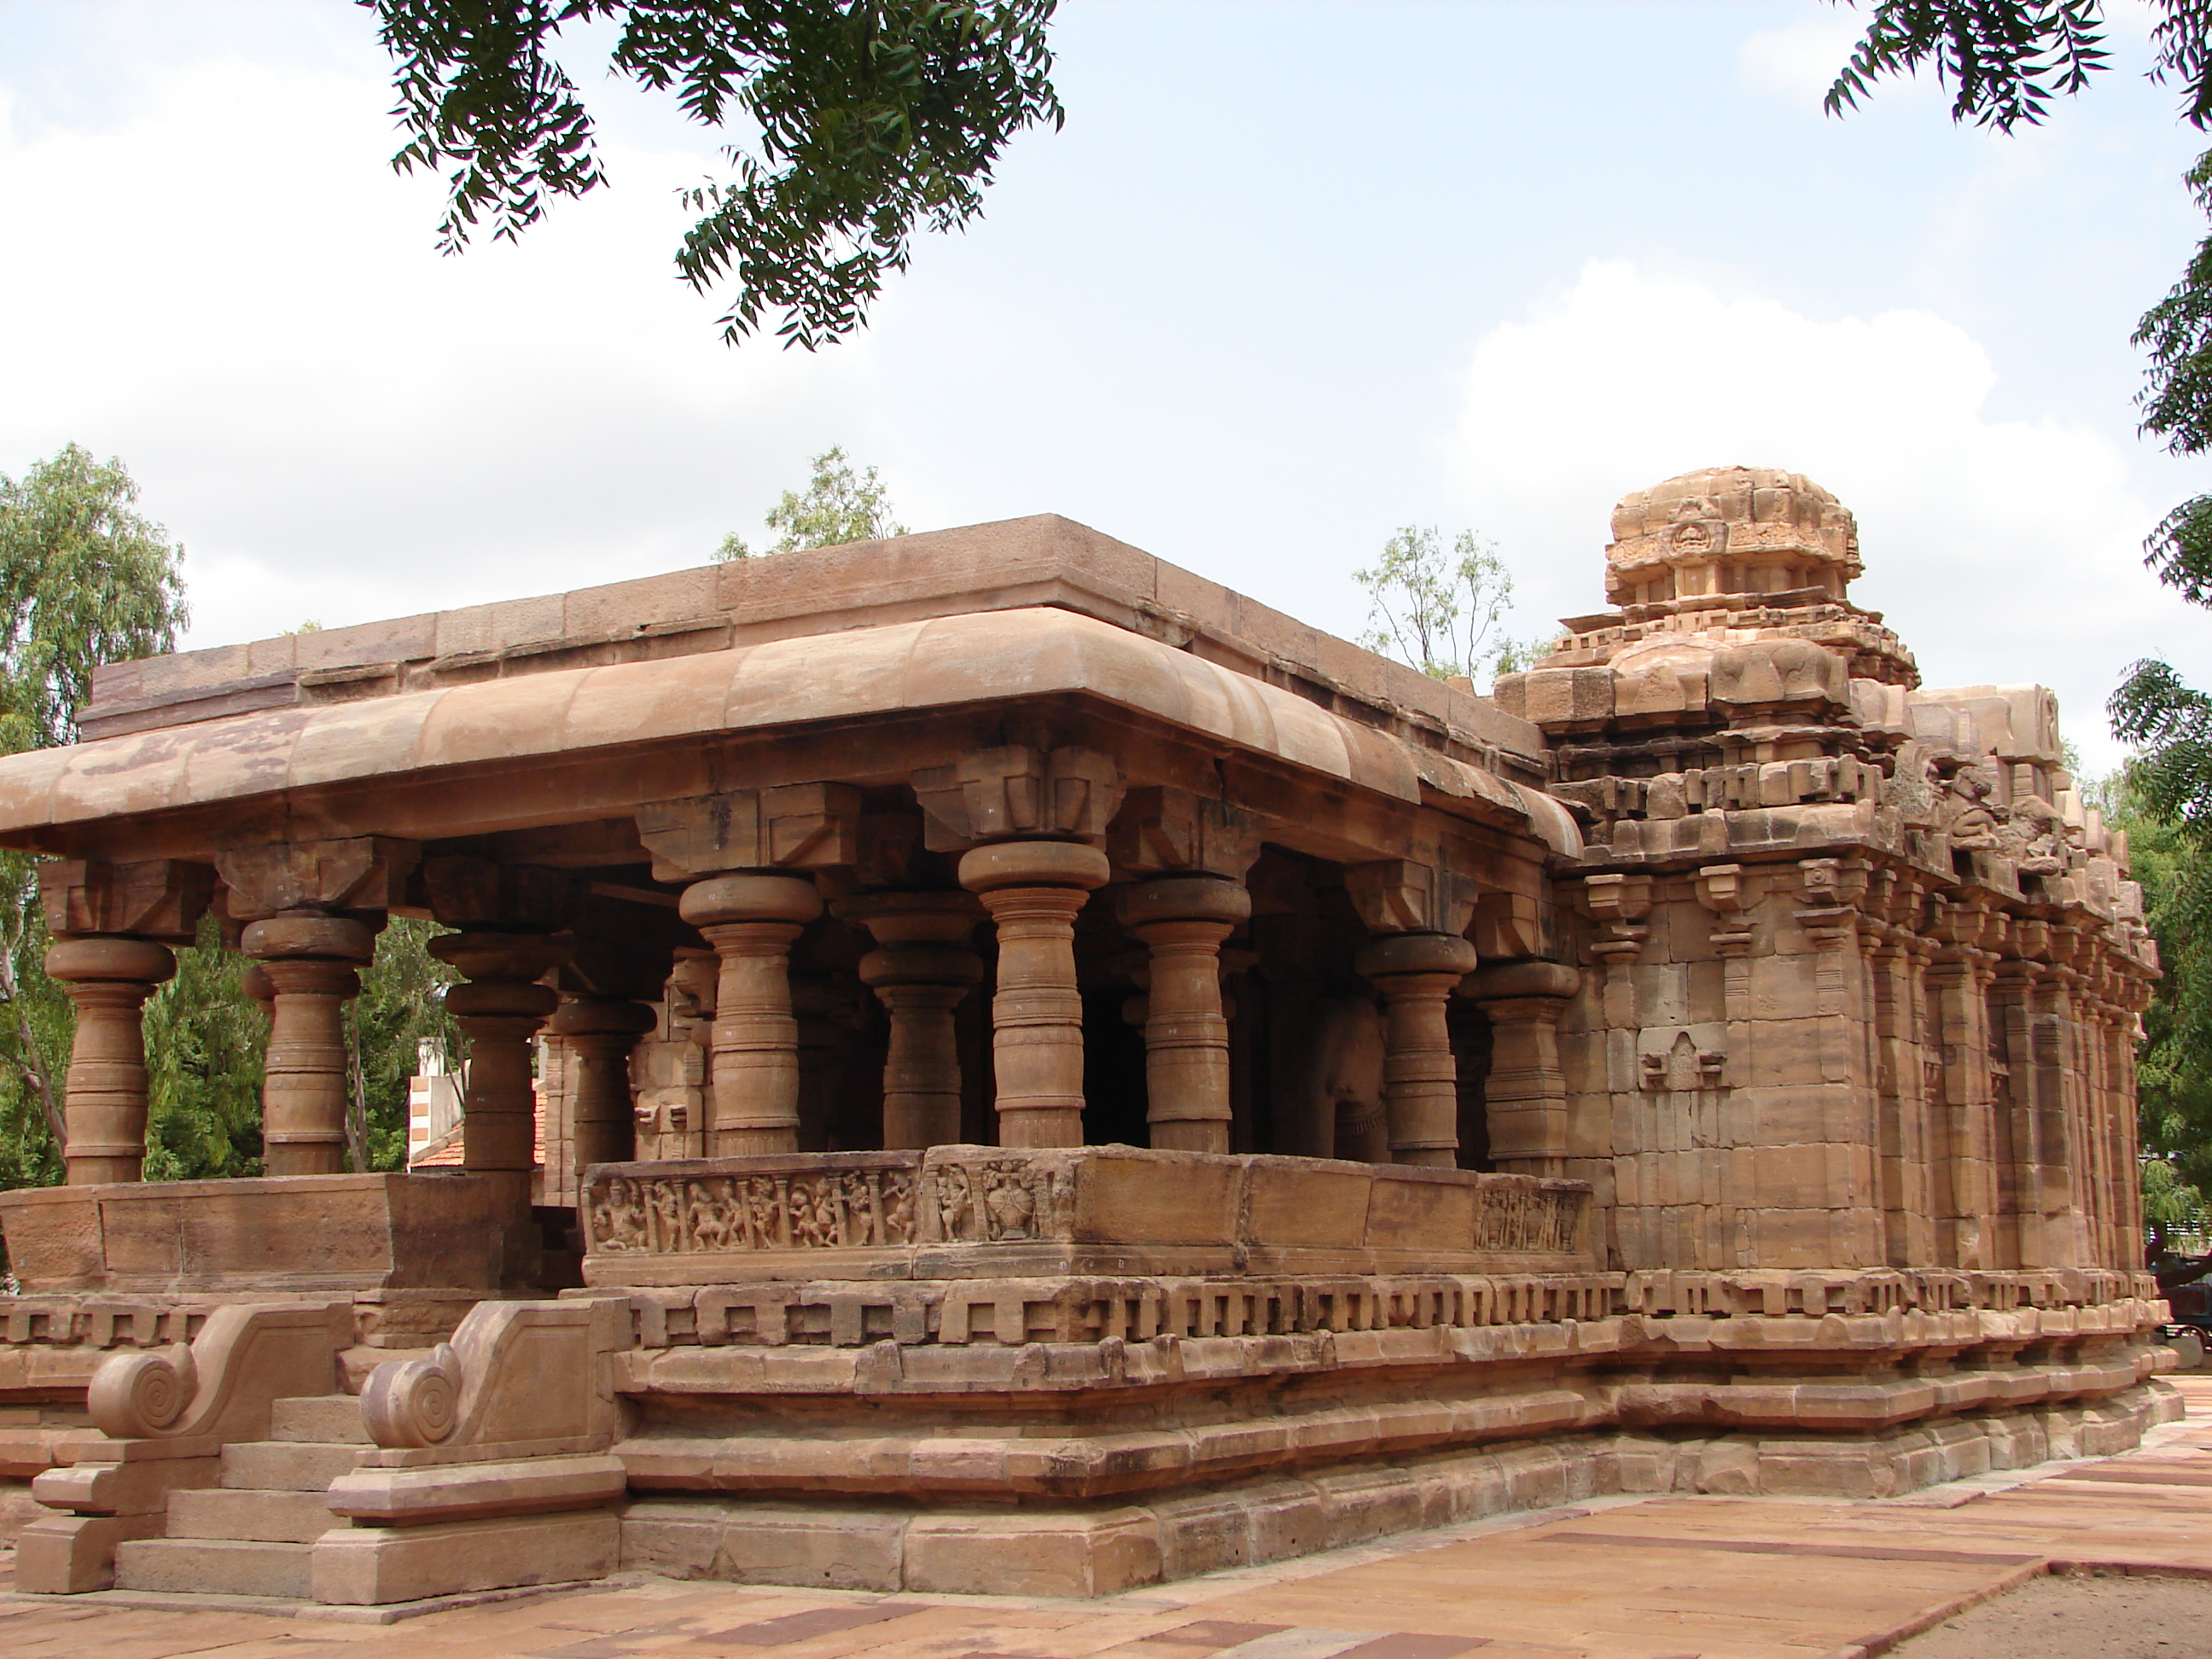 Pattadakal-The City Of Red: Best Travel Guide & Planner In 2020 6